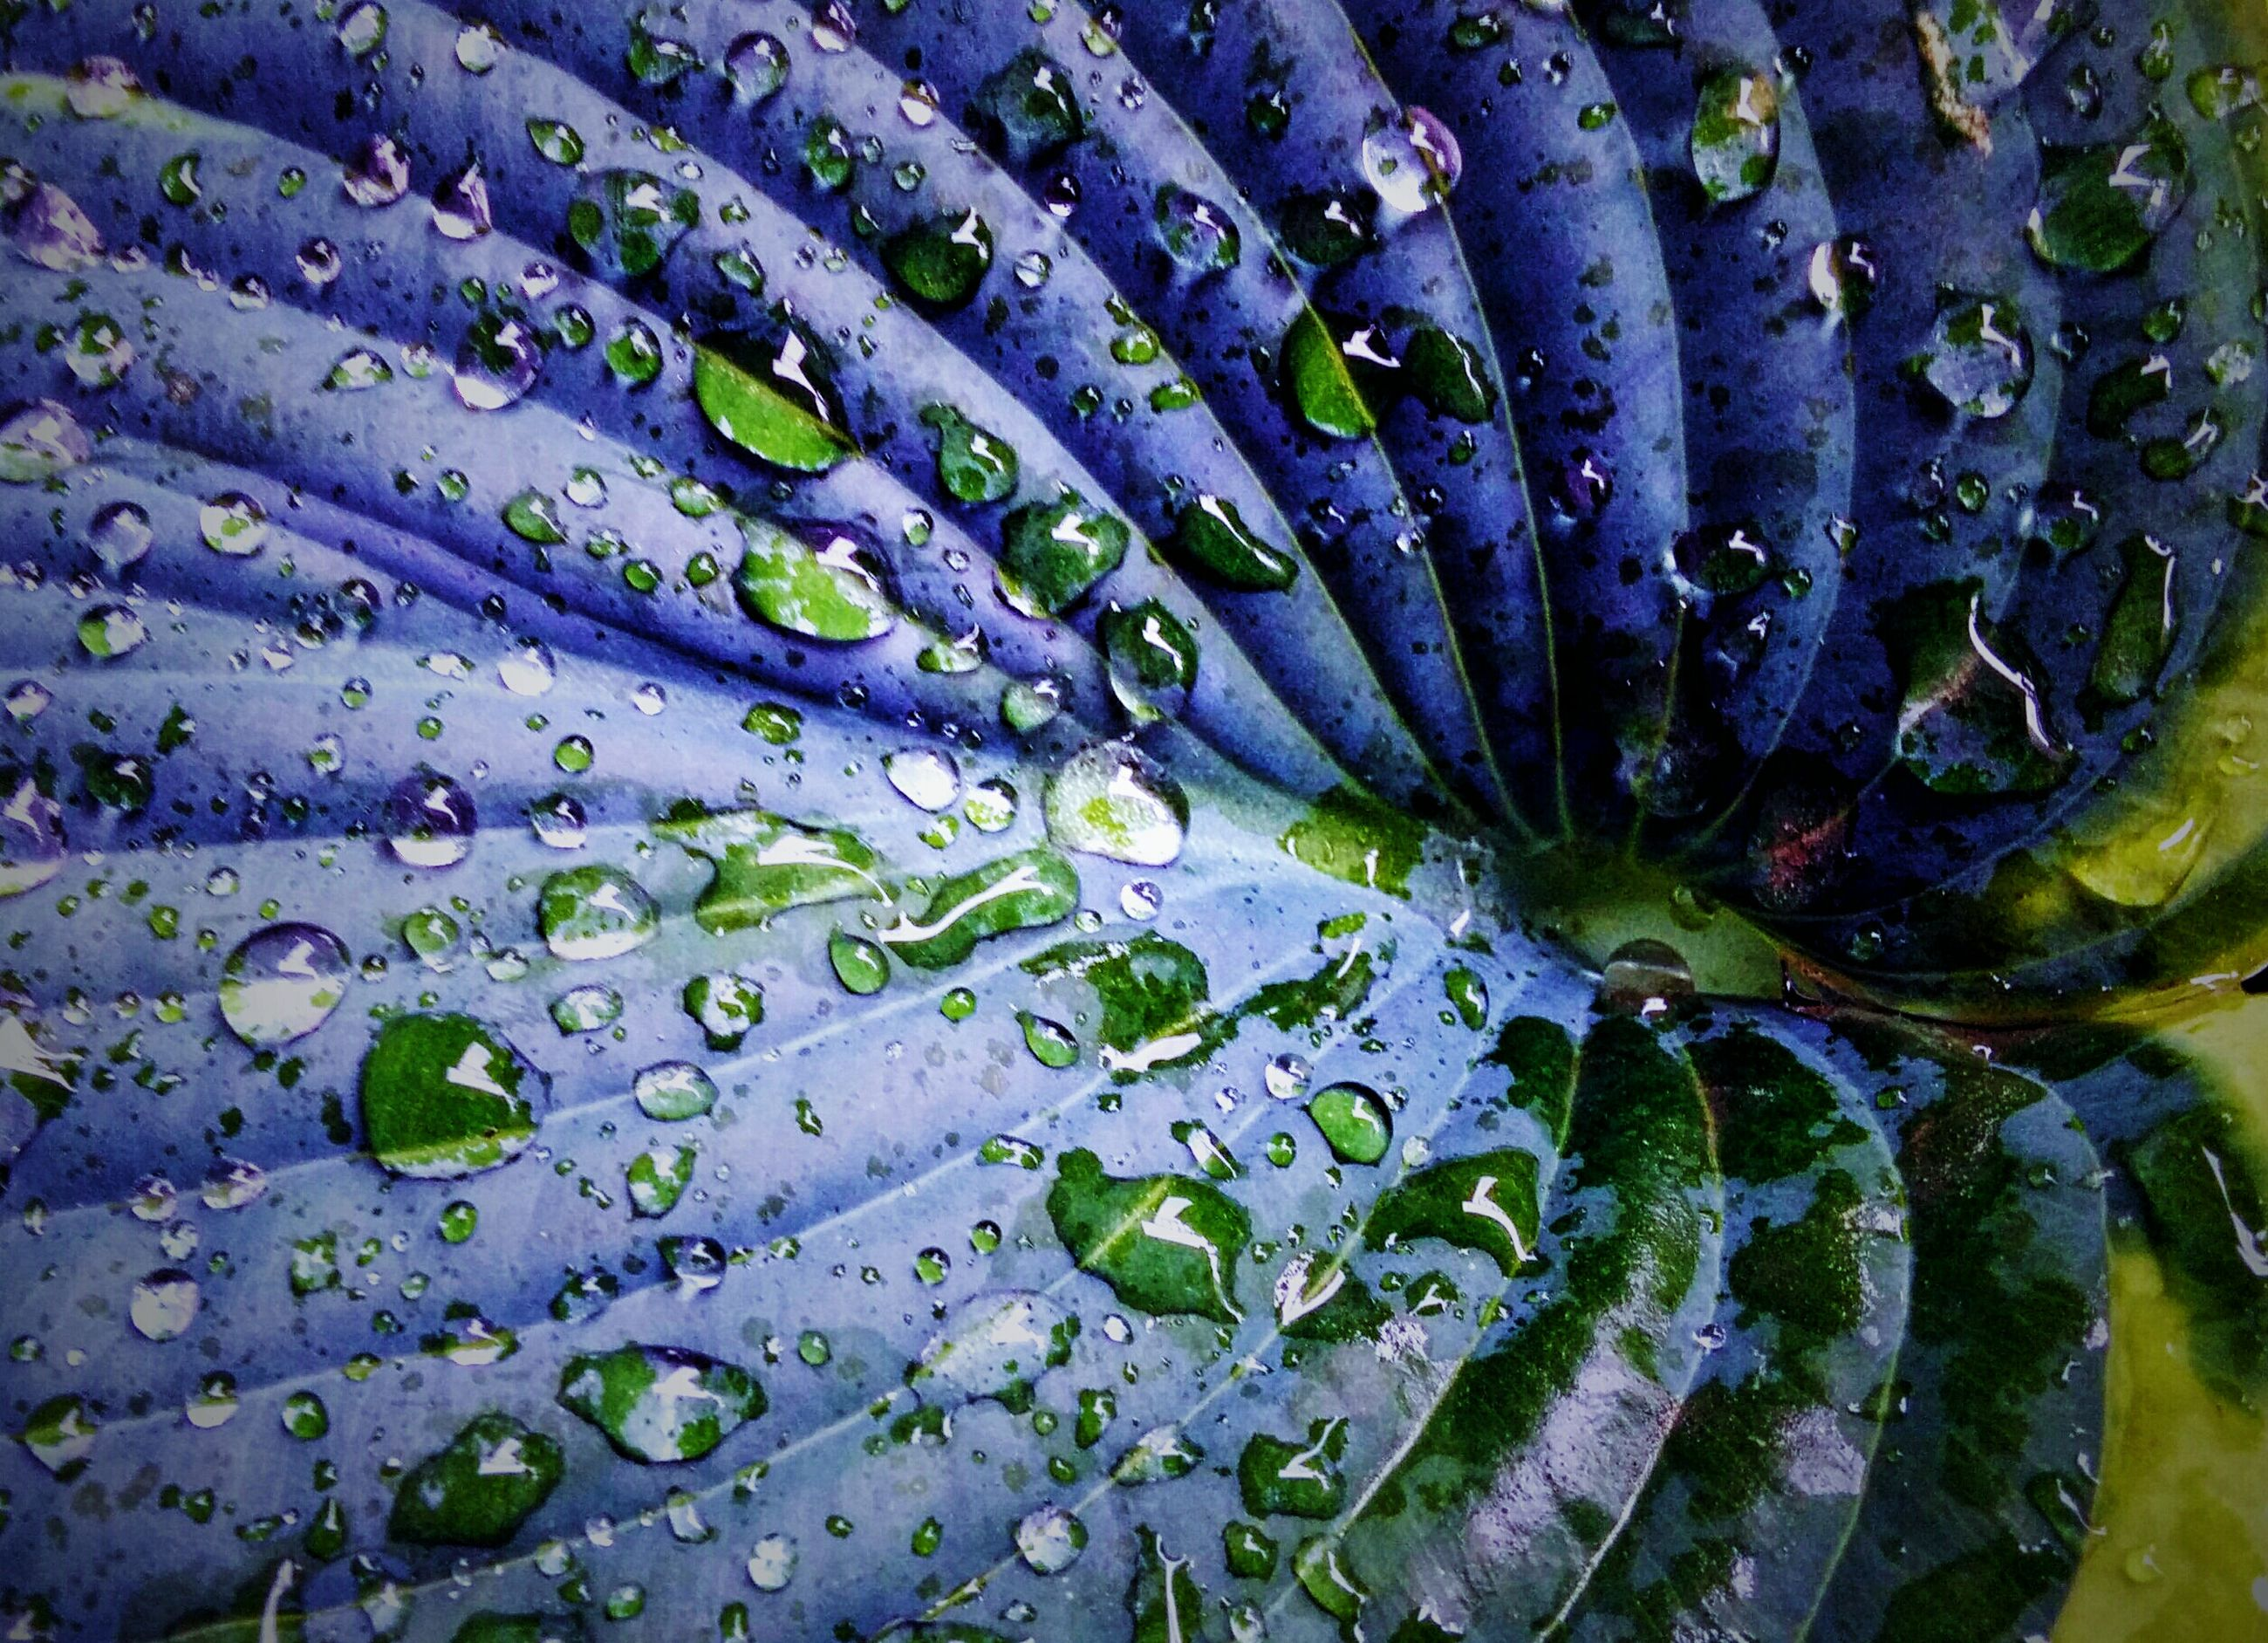 water, full frame, backgrounds, drop, wet, freshness, leaf, green color, close-up, fragility, pattern, high angle view, nature, beauty in nature, natural pattern, growth, detail, plant, no people, outdoors